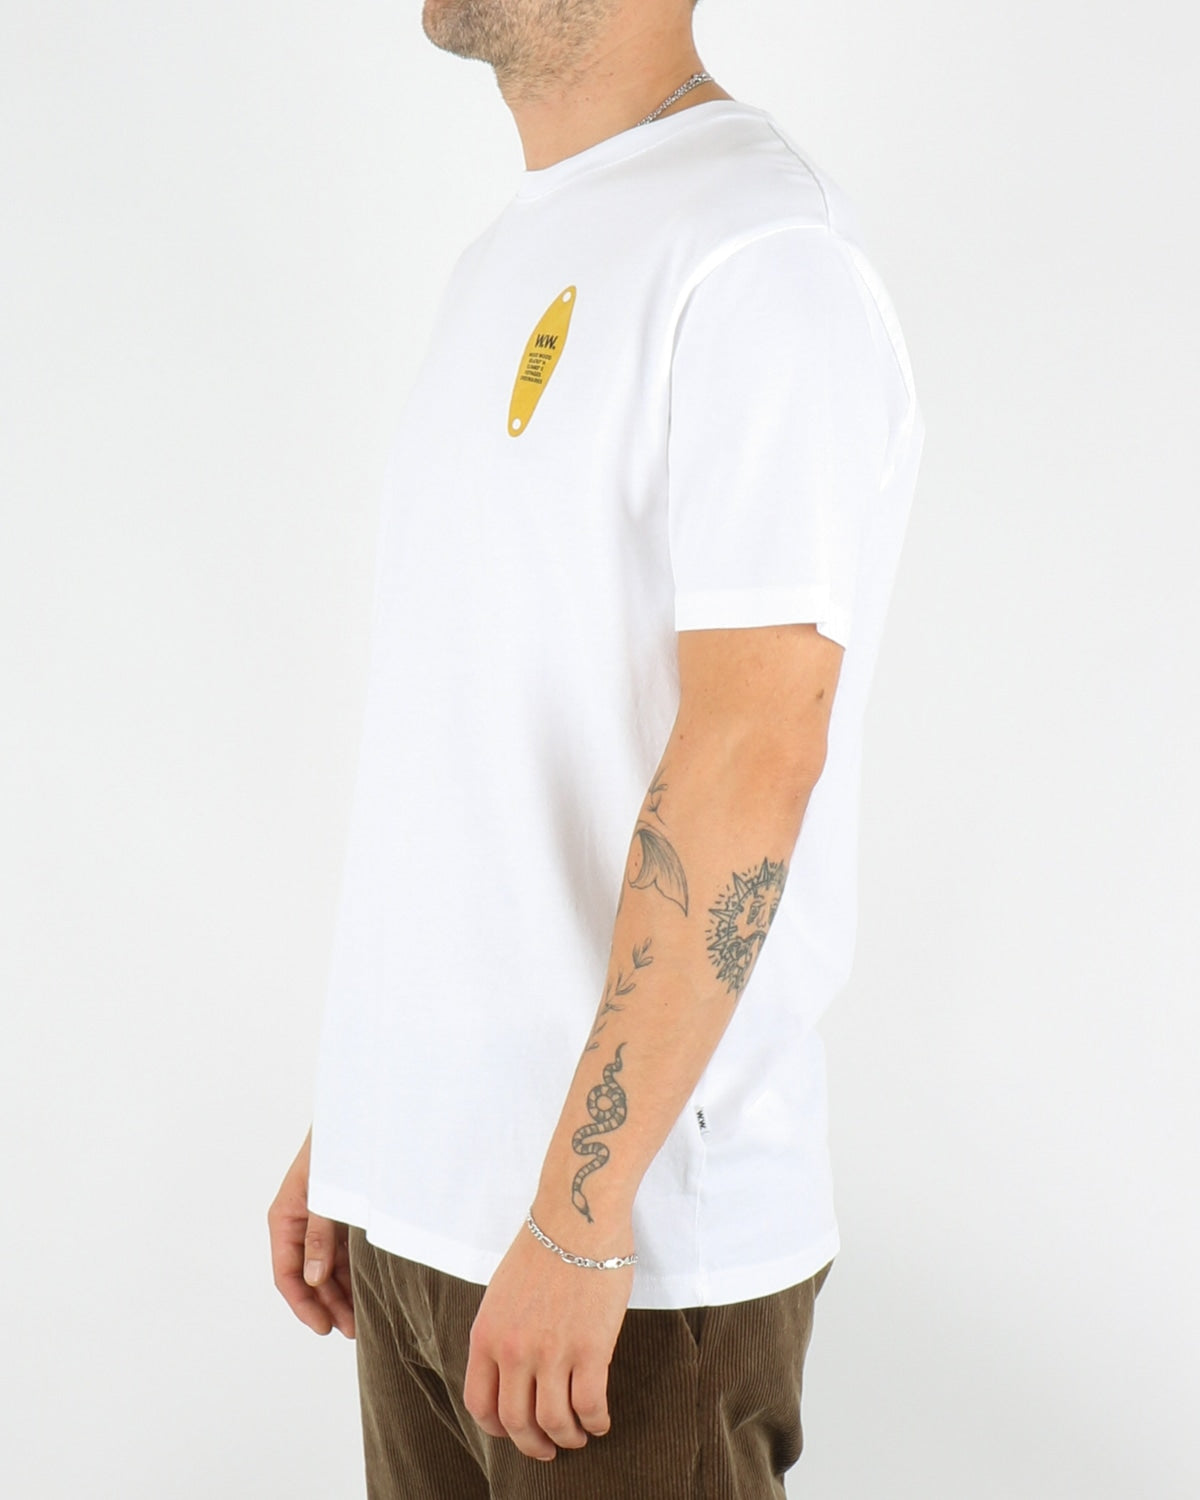 Tackle Shirt, bright white